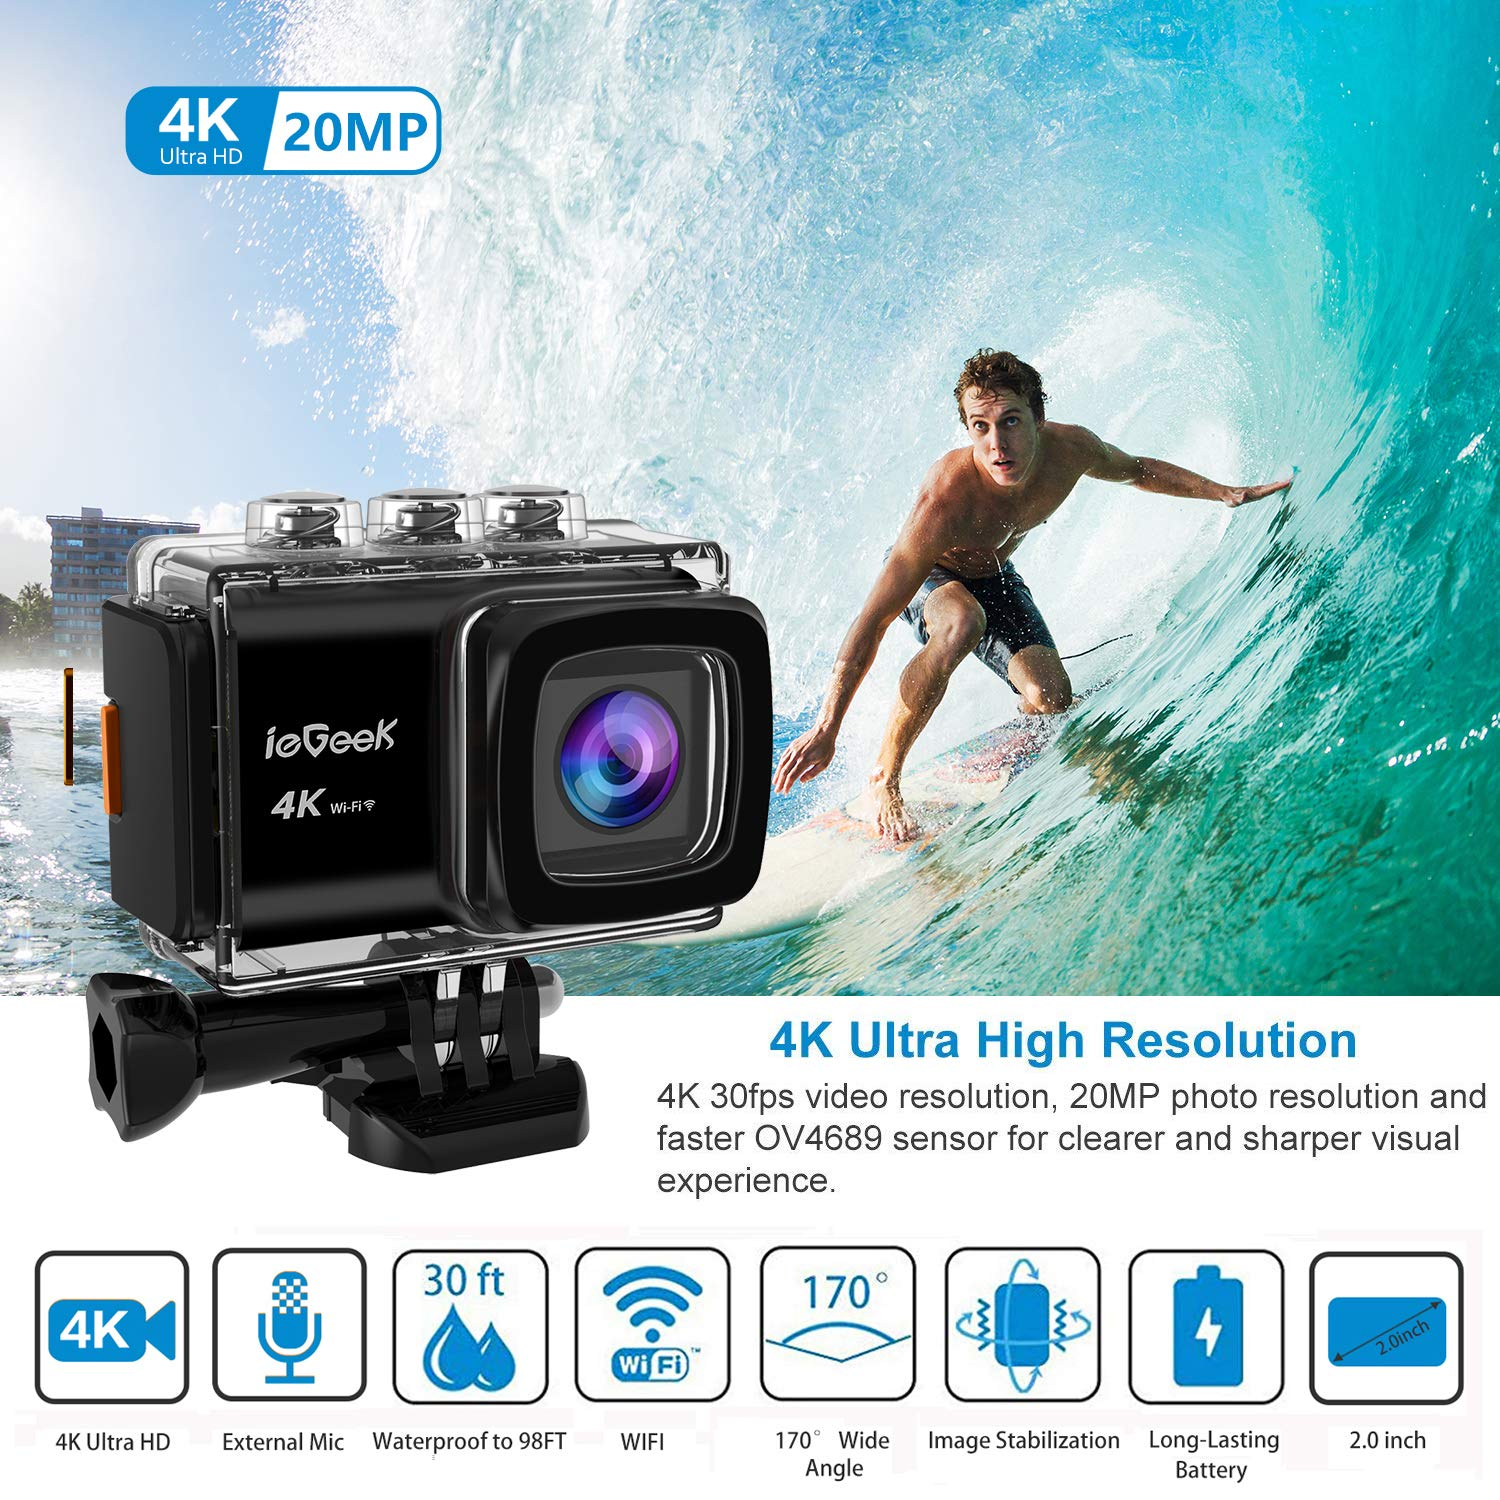 Action Camera, ieGeek 4K 20MP WiFi Waterproof Sports Cam Ultra HD Underwater Camera DV Camcorder EIS Image Stabilizer 170 Degree Wide-Angle with 2 Battery/External Microphone/Carry Case/Accessory Kit by ieGeek (Image #2)